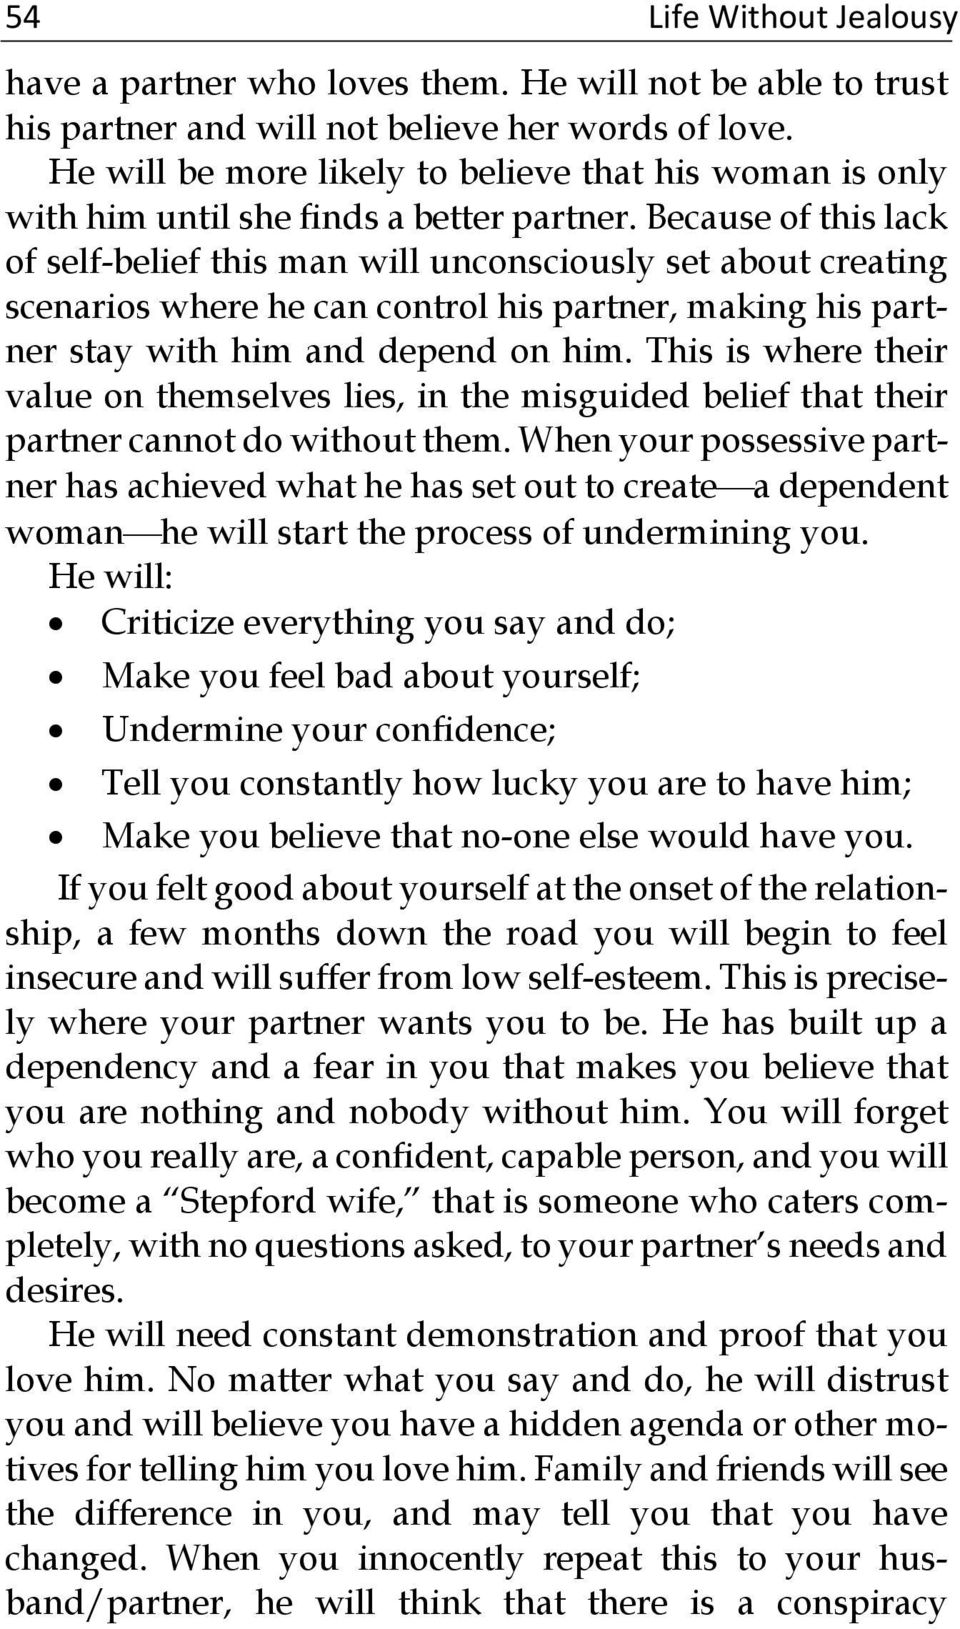 Because of this lack of self-belief this man will unconsciously set about creating scenarios where he can control his partner, making his partner stay with him and depend on him.